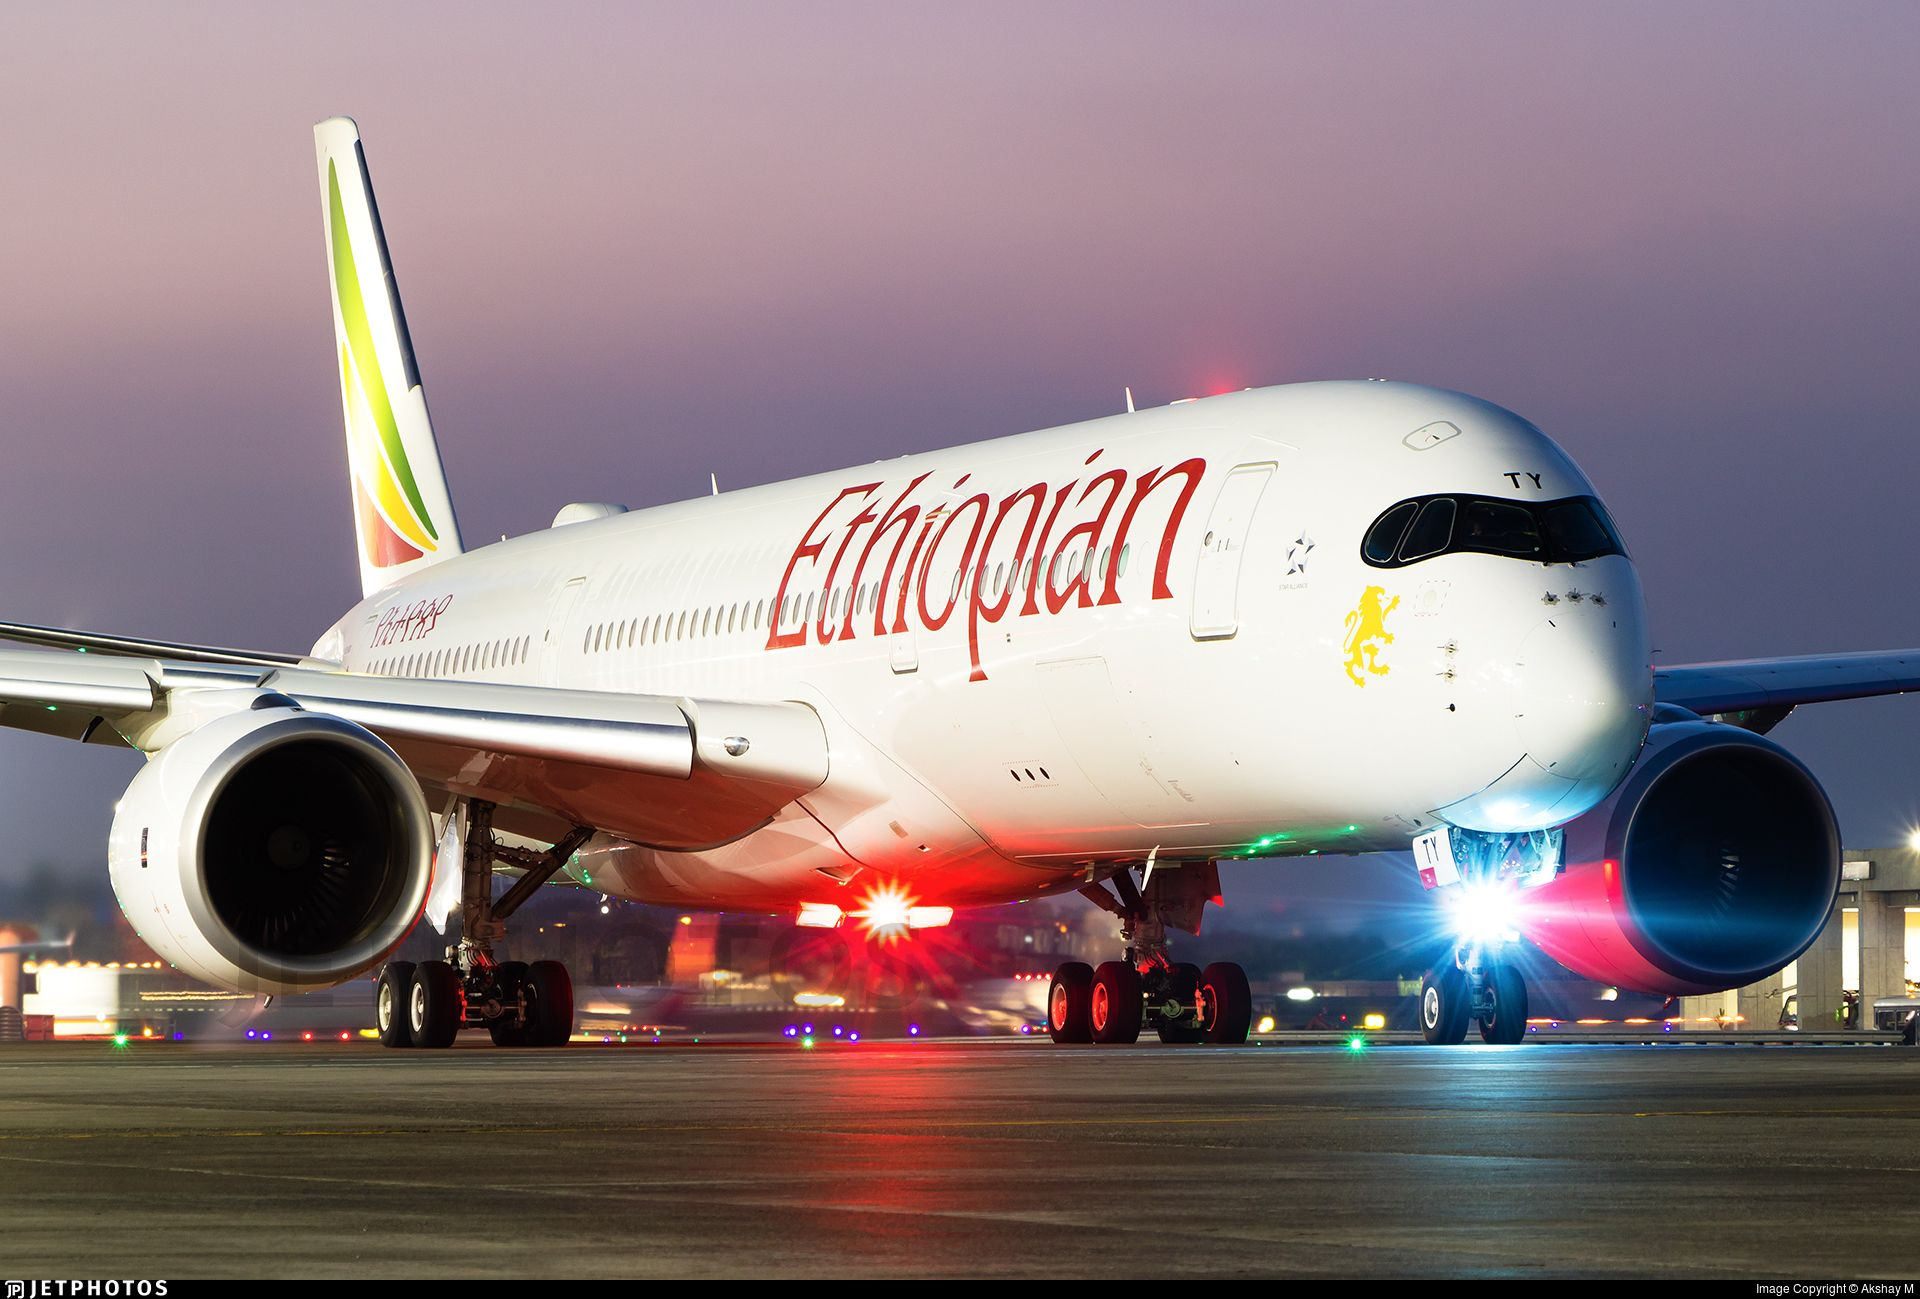 Aviation Ethiopian Airlines Is Making Huge Advances In